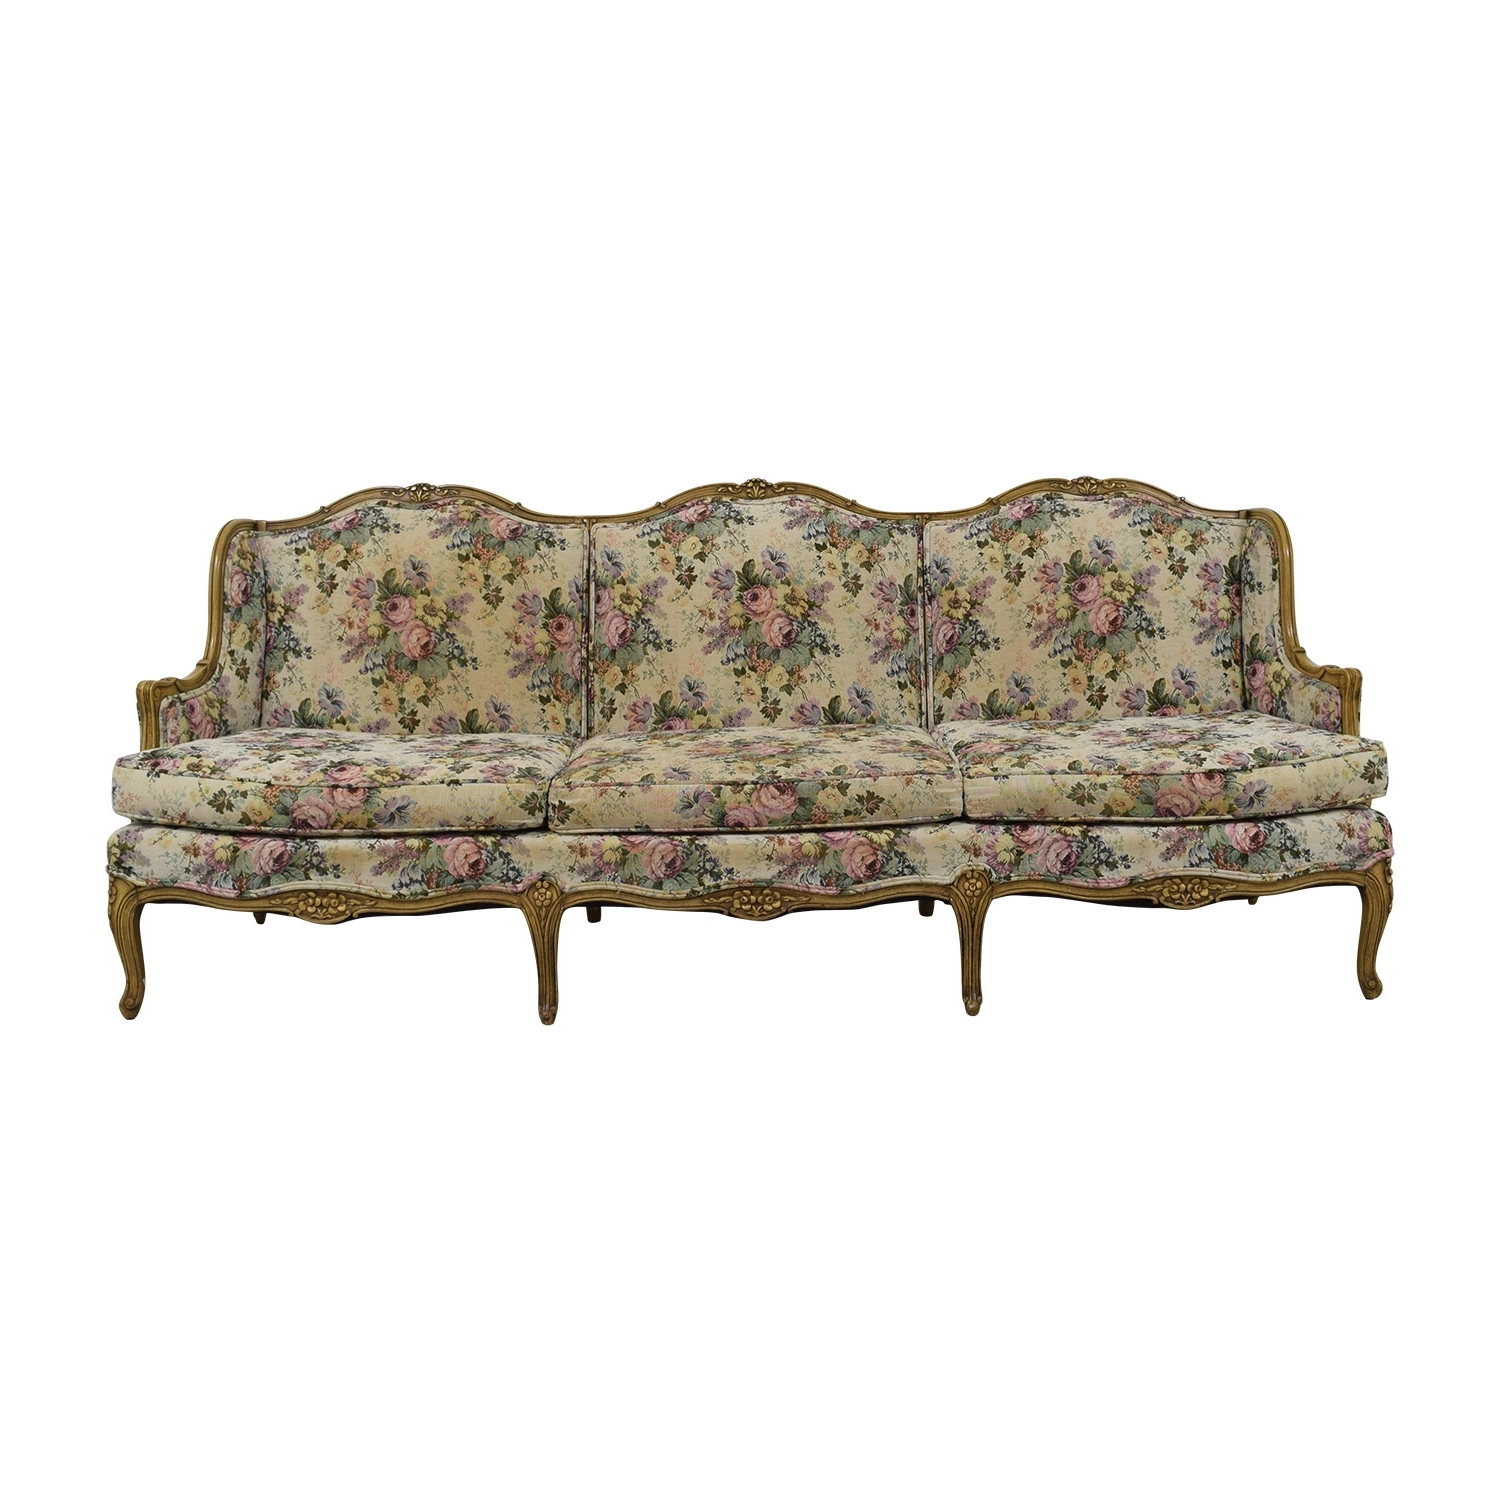 [%86% Off – Vintage Floral Sofa / Sofas Pertaining To Fashionable Vintage Sofas|Vintage Sofas Inside Favorite 86% Off – Vintage Floral Sofa / Sofas|Popular Vintage Sofas Regarding 86% Off – Vintage Floral Sofa / Sofas|Famous 86% Off – Vintage Floral Sofa / Sofas Regarding Vintage Sofas%] (View 1 of 15)